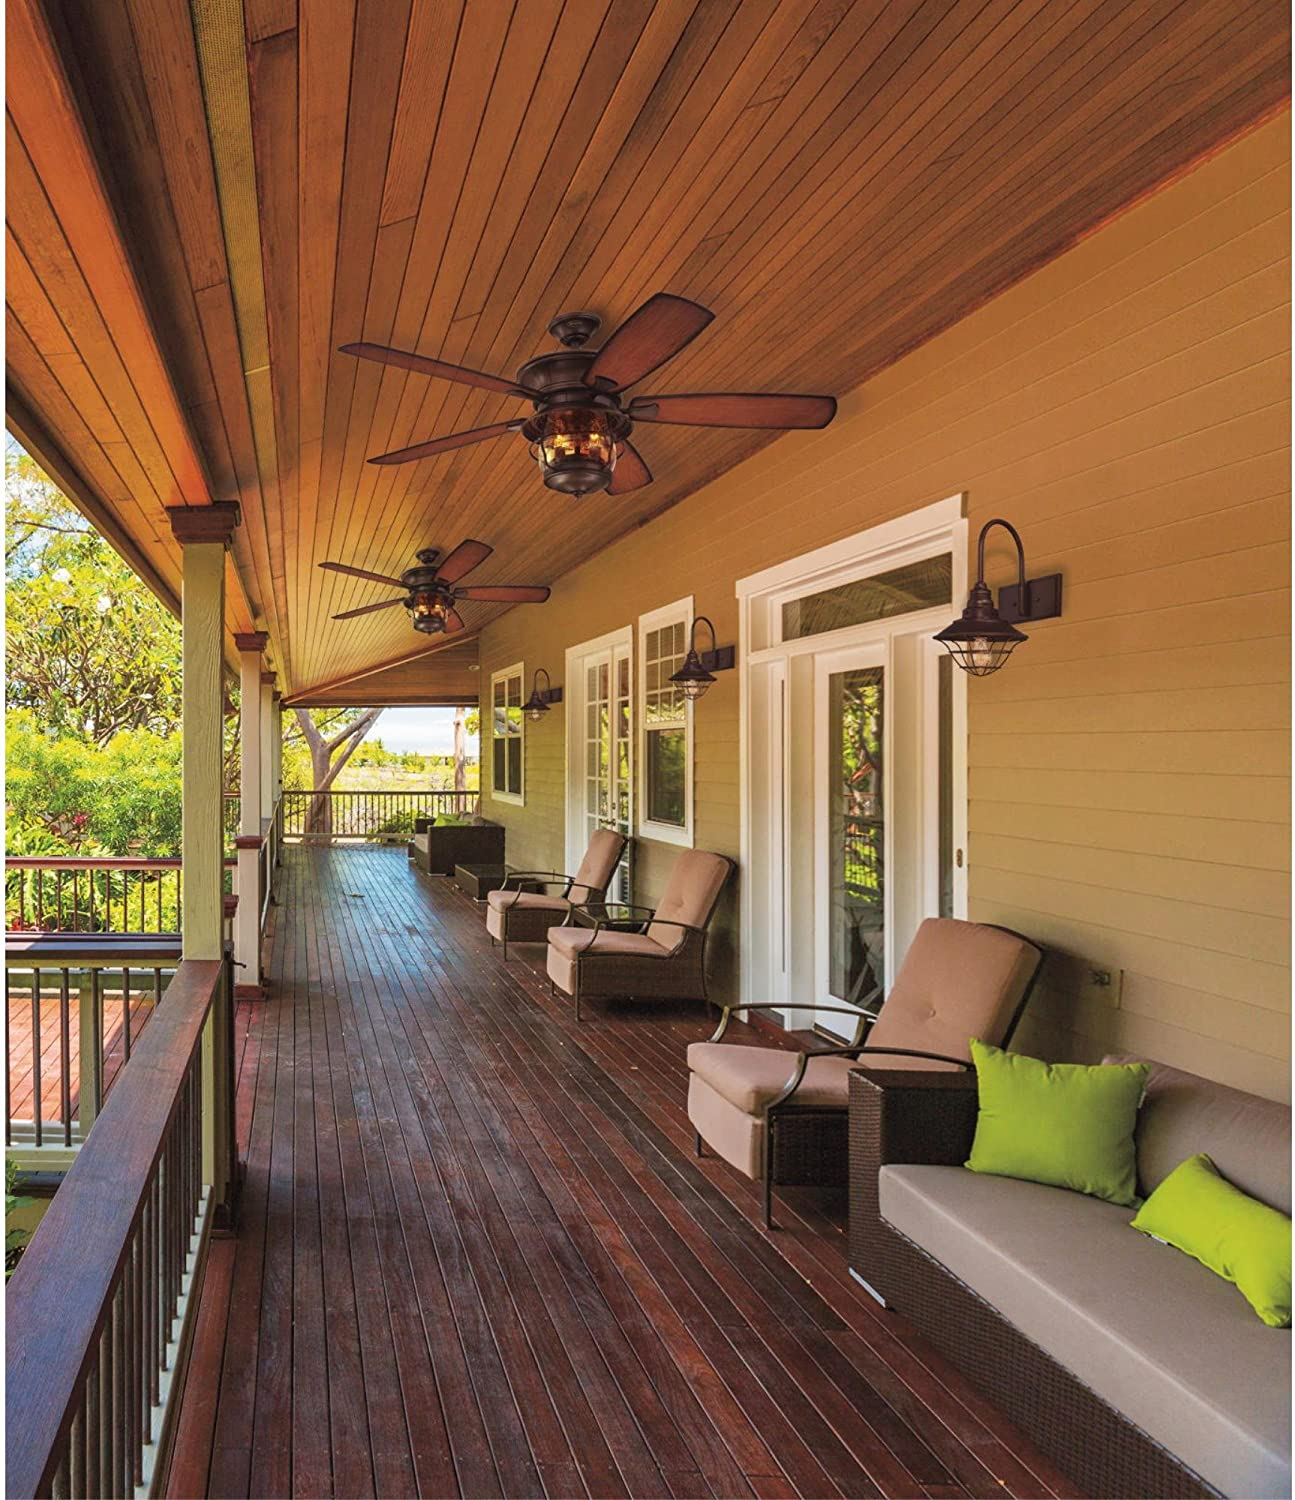 7800000 Brentford Indoor Outdoor 52 Inch Five Blade Reversible Ceiling Fan Aged Walnut With Clear Seeded Glass Ceiling Fans Amazon Canada